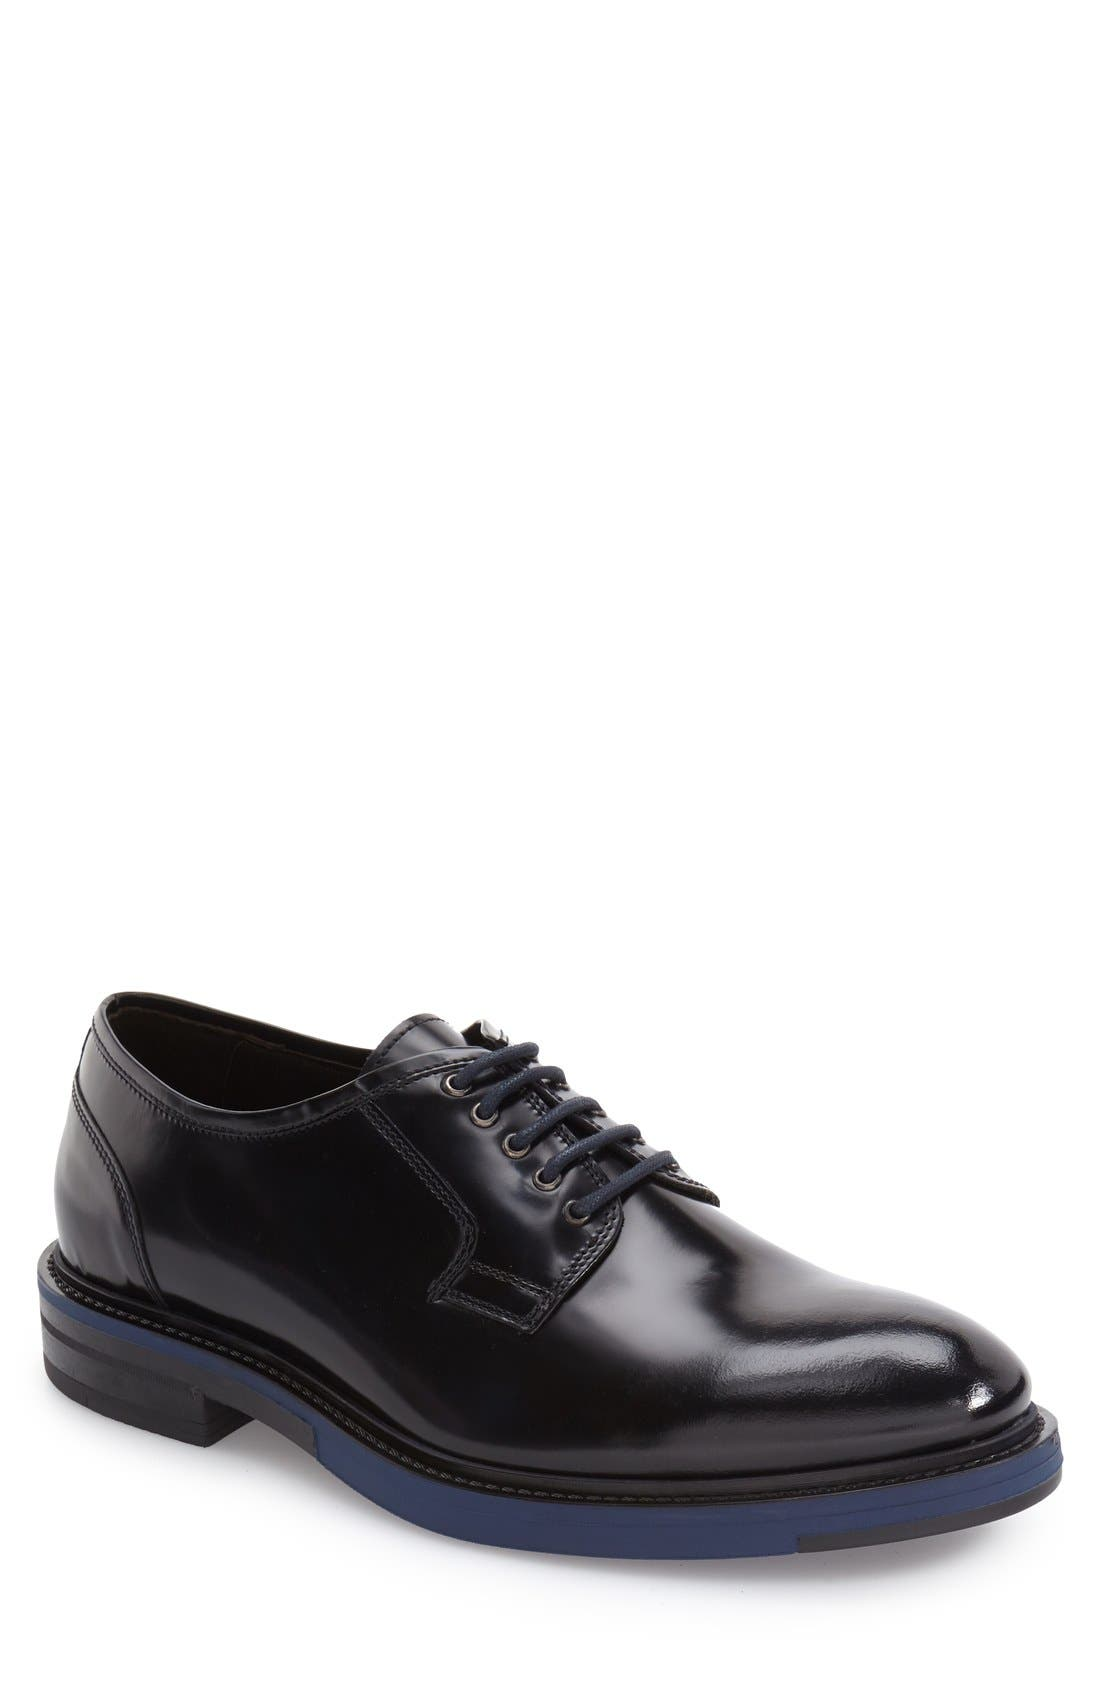 Alternate Image 1 Selected - Kenneth Cole New York Hi Five Plain Toe Derby (Men)